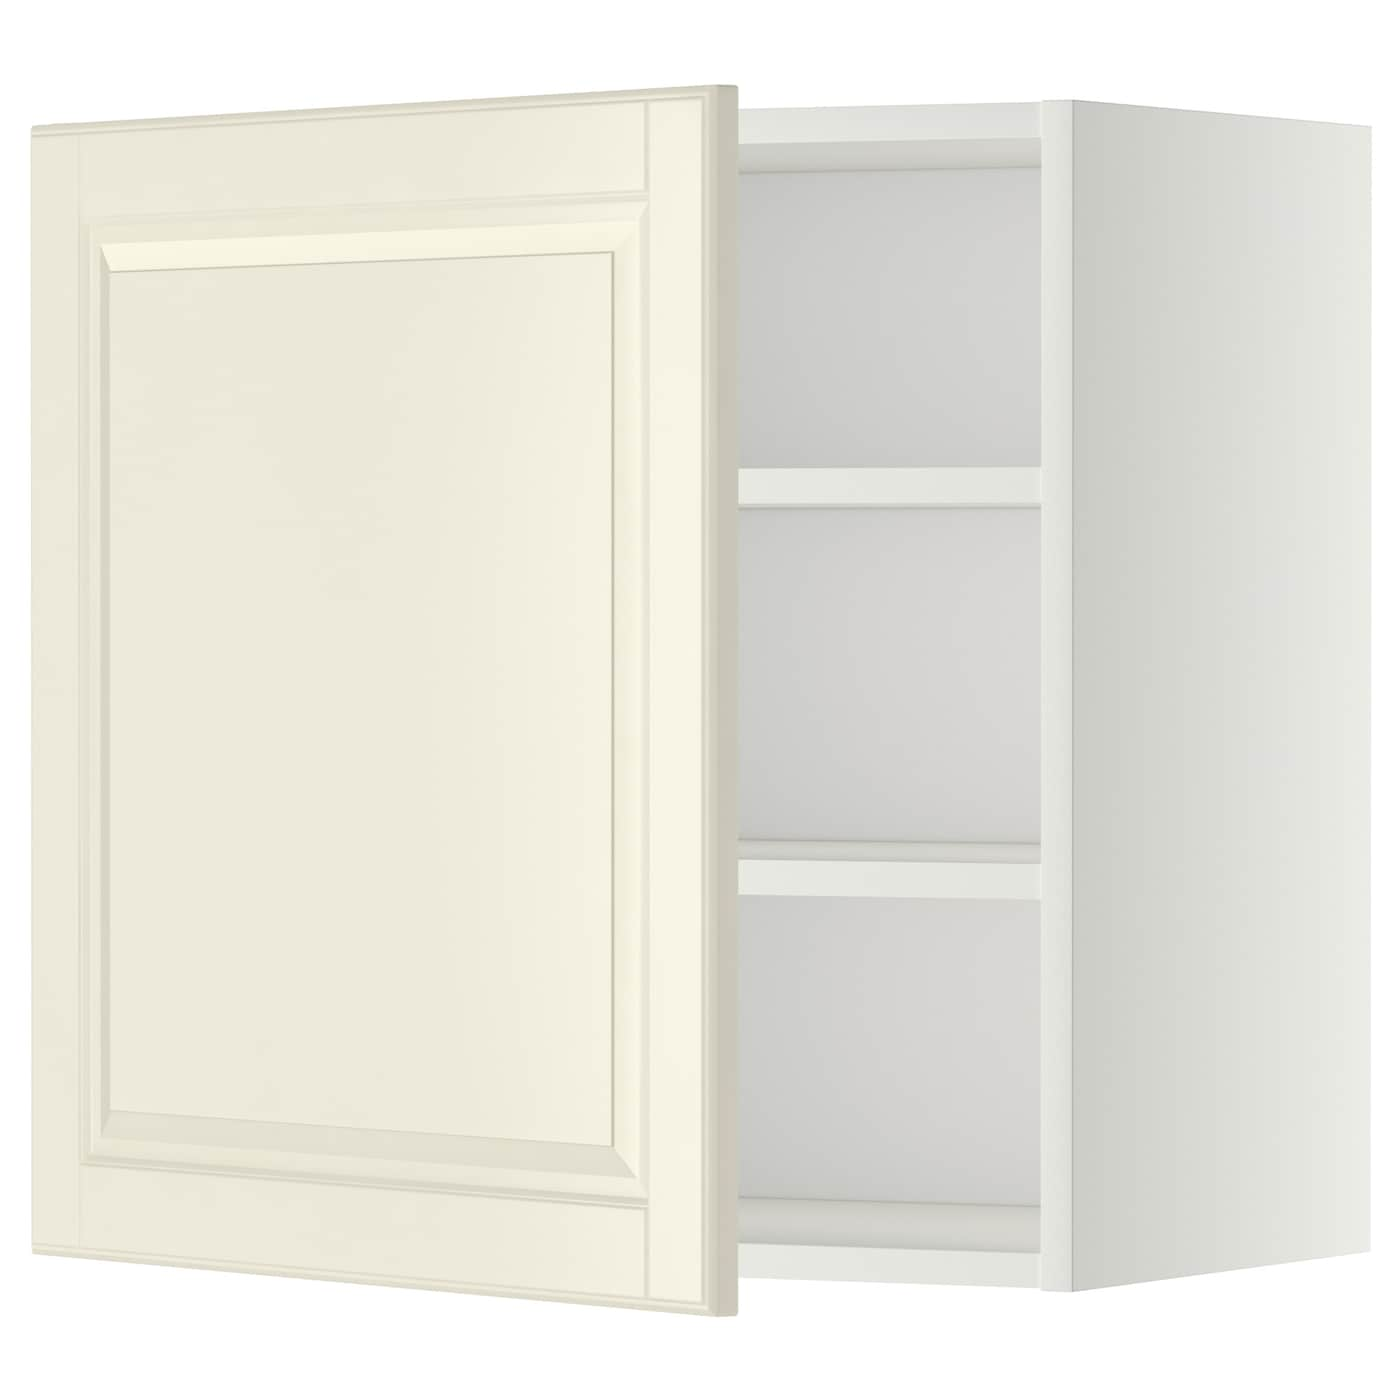 Wall Cabinet With Shelves Metod White Bodbyn Off White